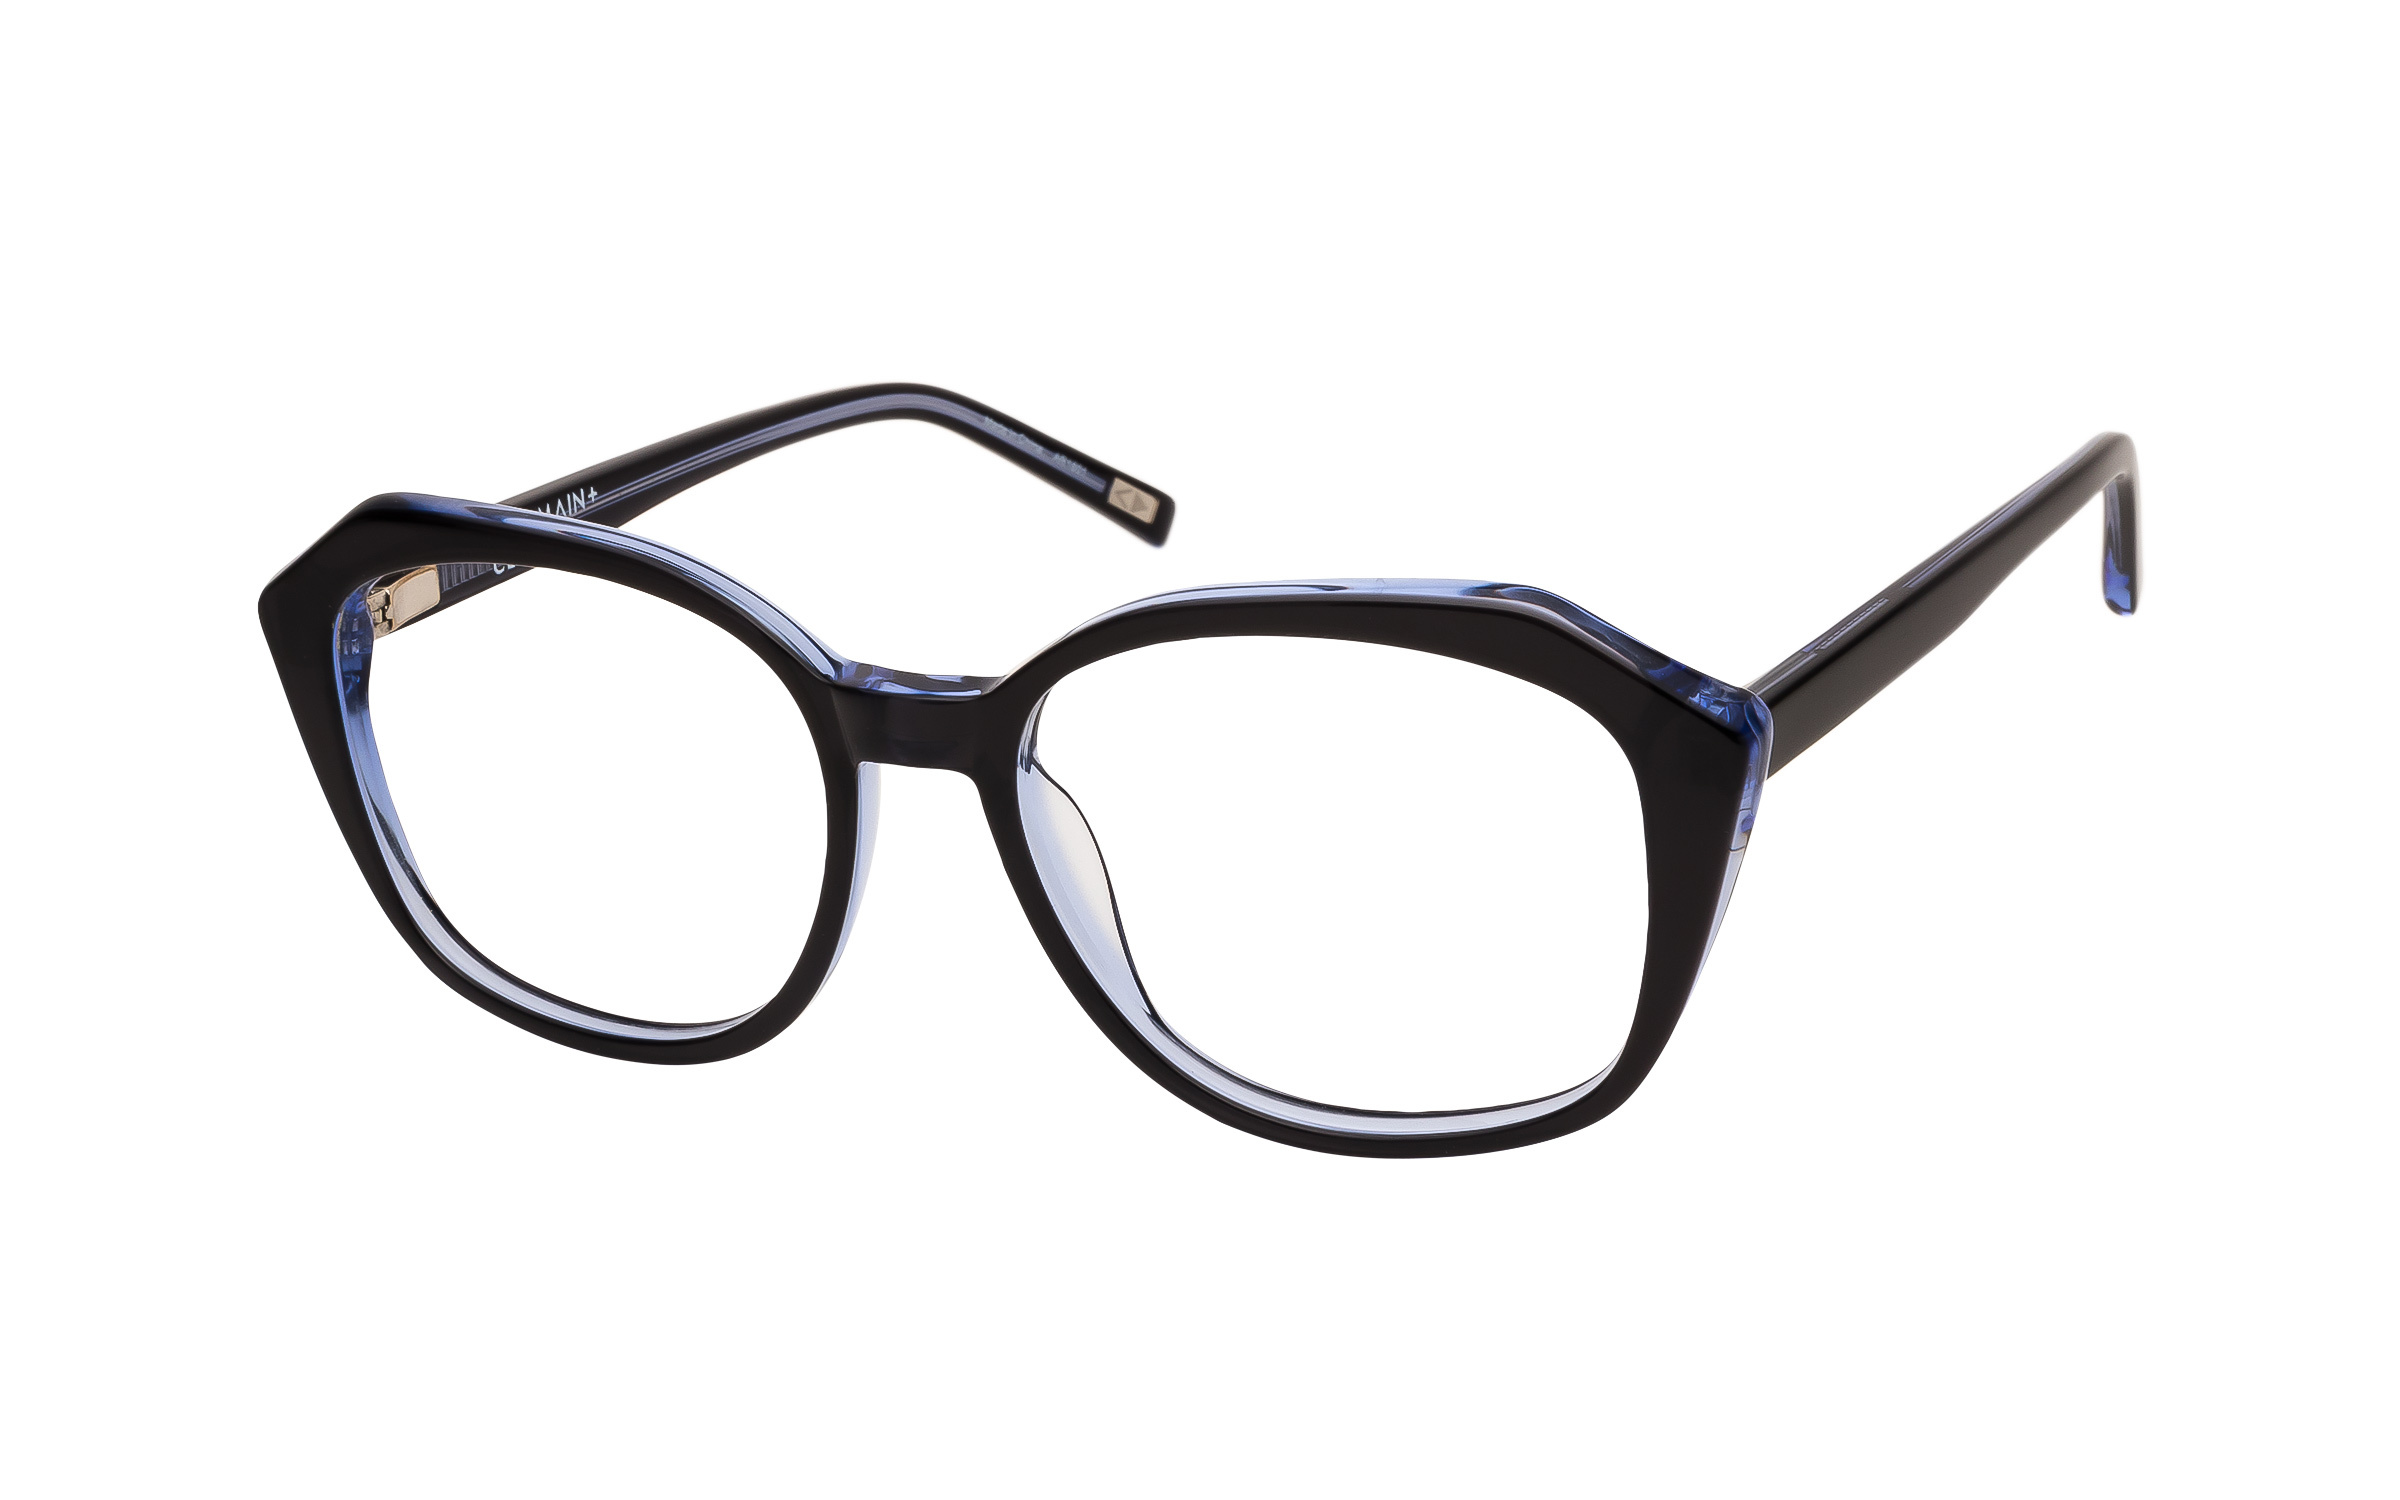 Women's Vintage Glasses Black/Grey Main And Central Online Clearly